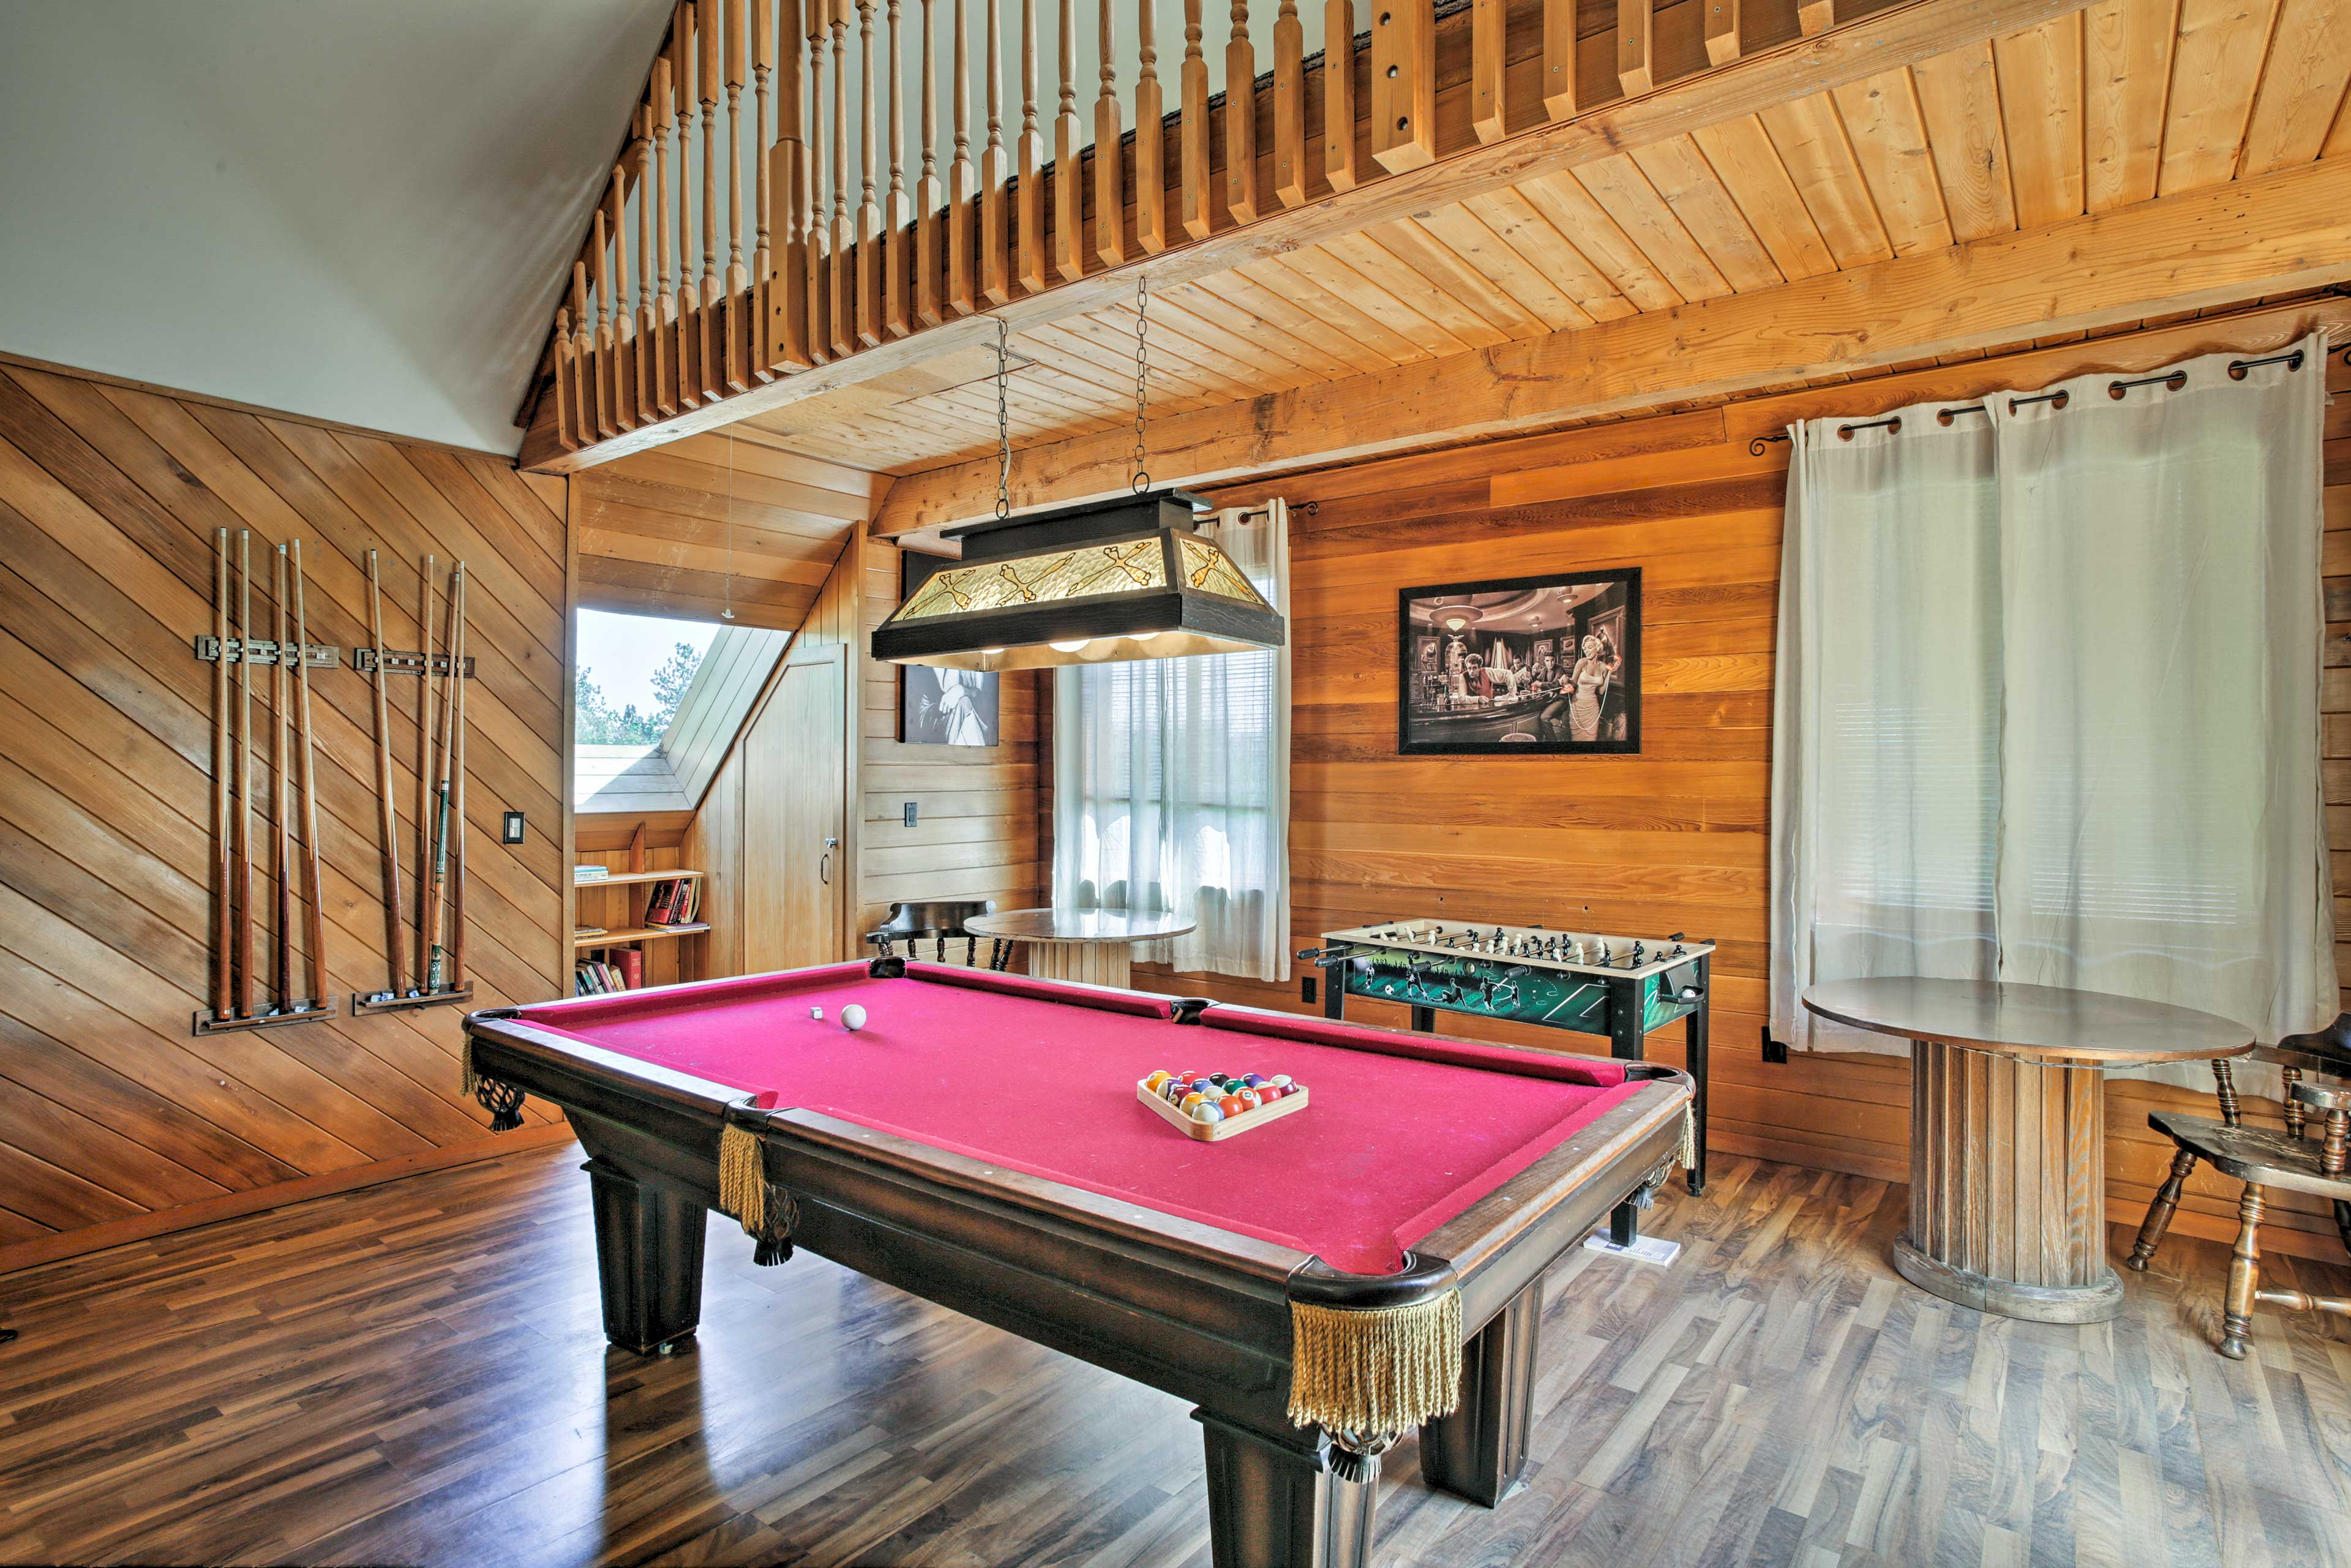 Upstairs, the game room boasts a pool table & foosball table.